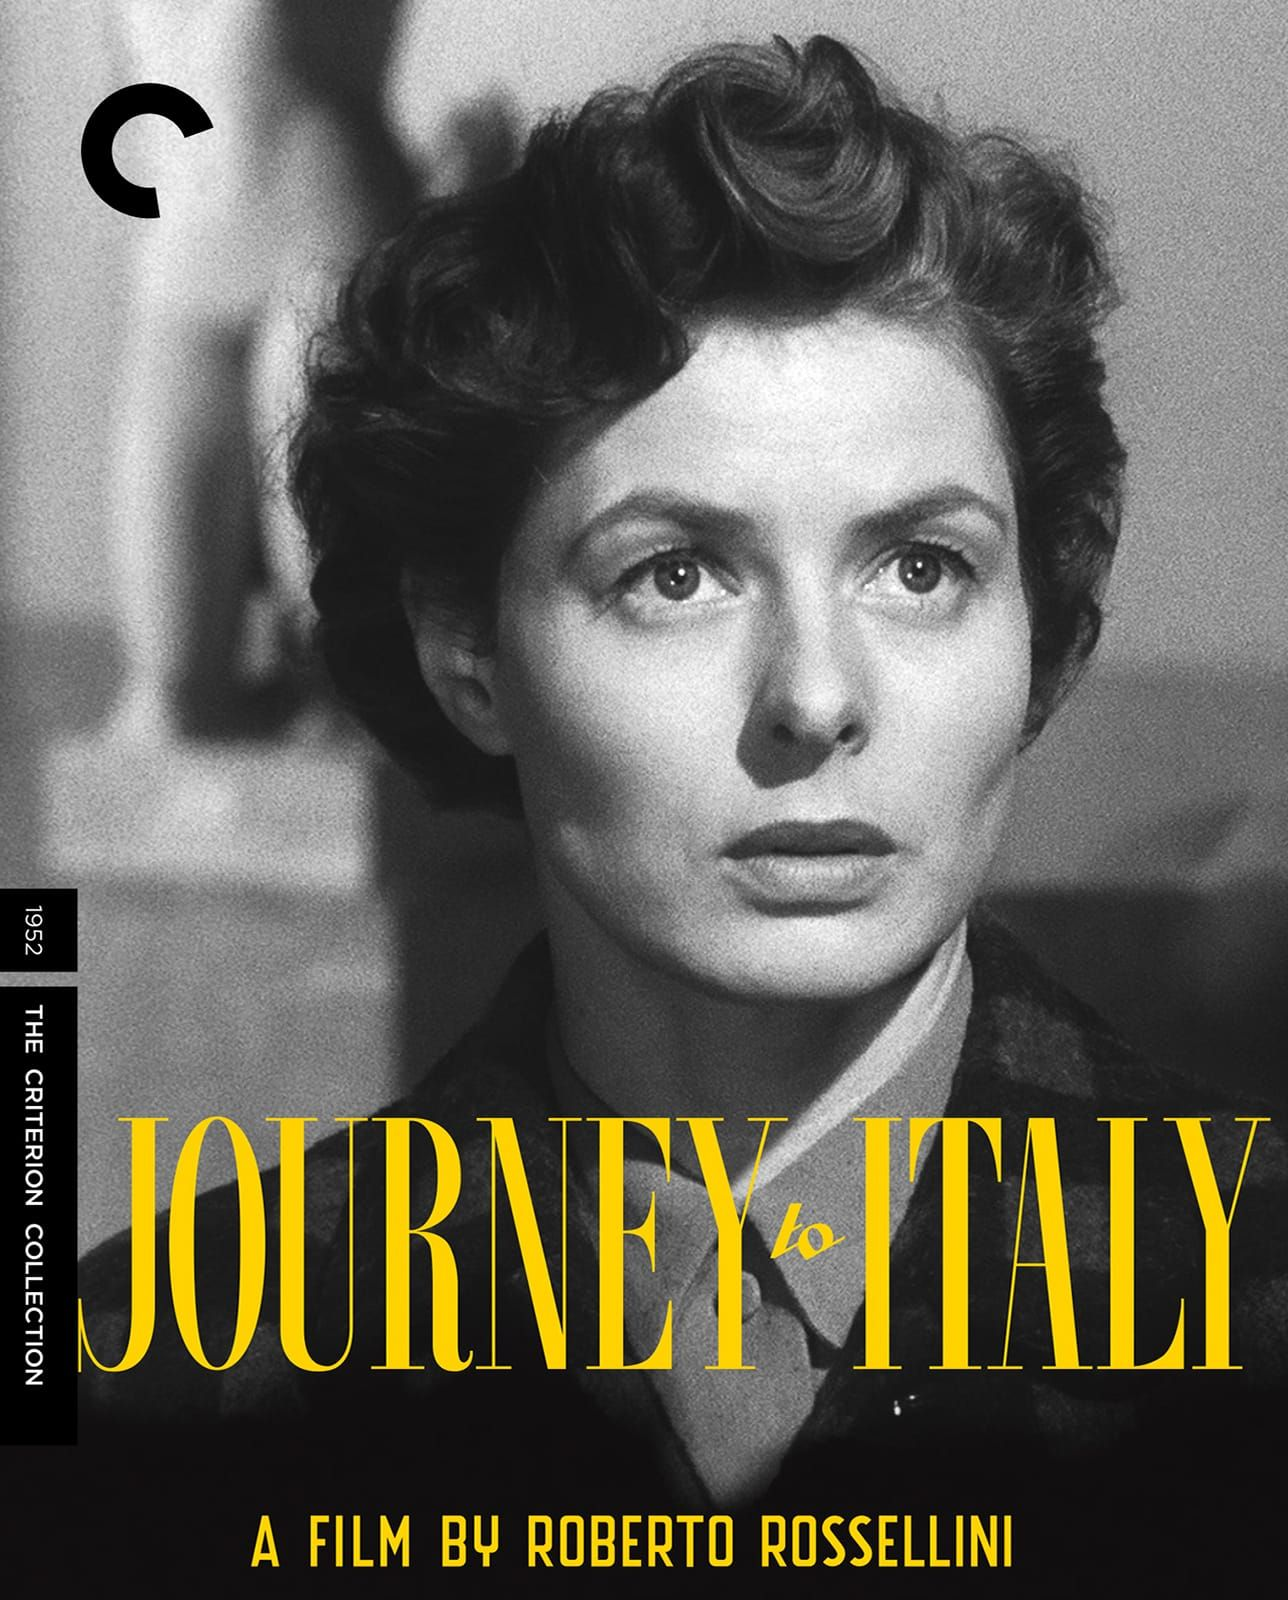 Journey to Italy Roberto Rossellini, The Image Movie, Ingrid Bergman, Film  Posters,